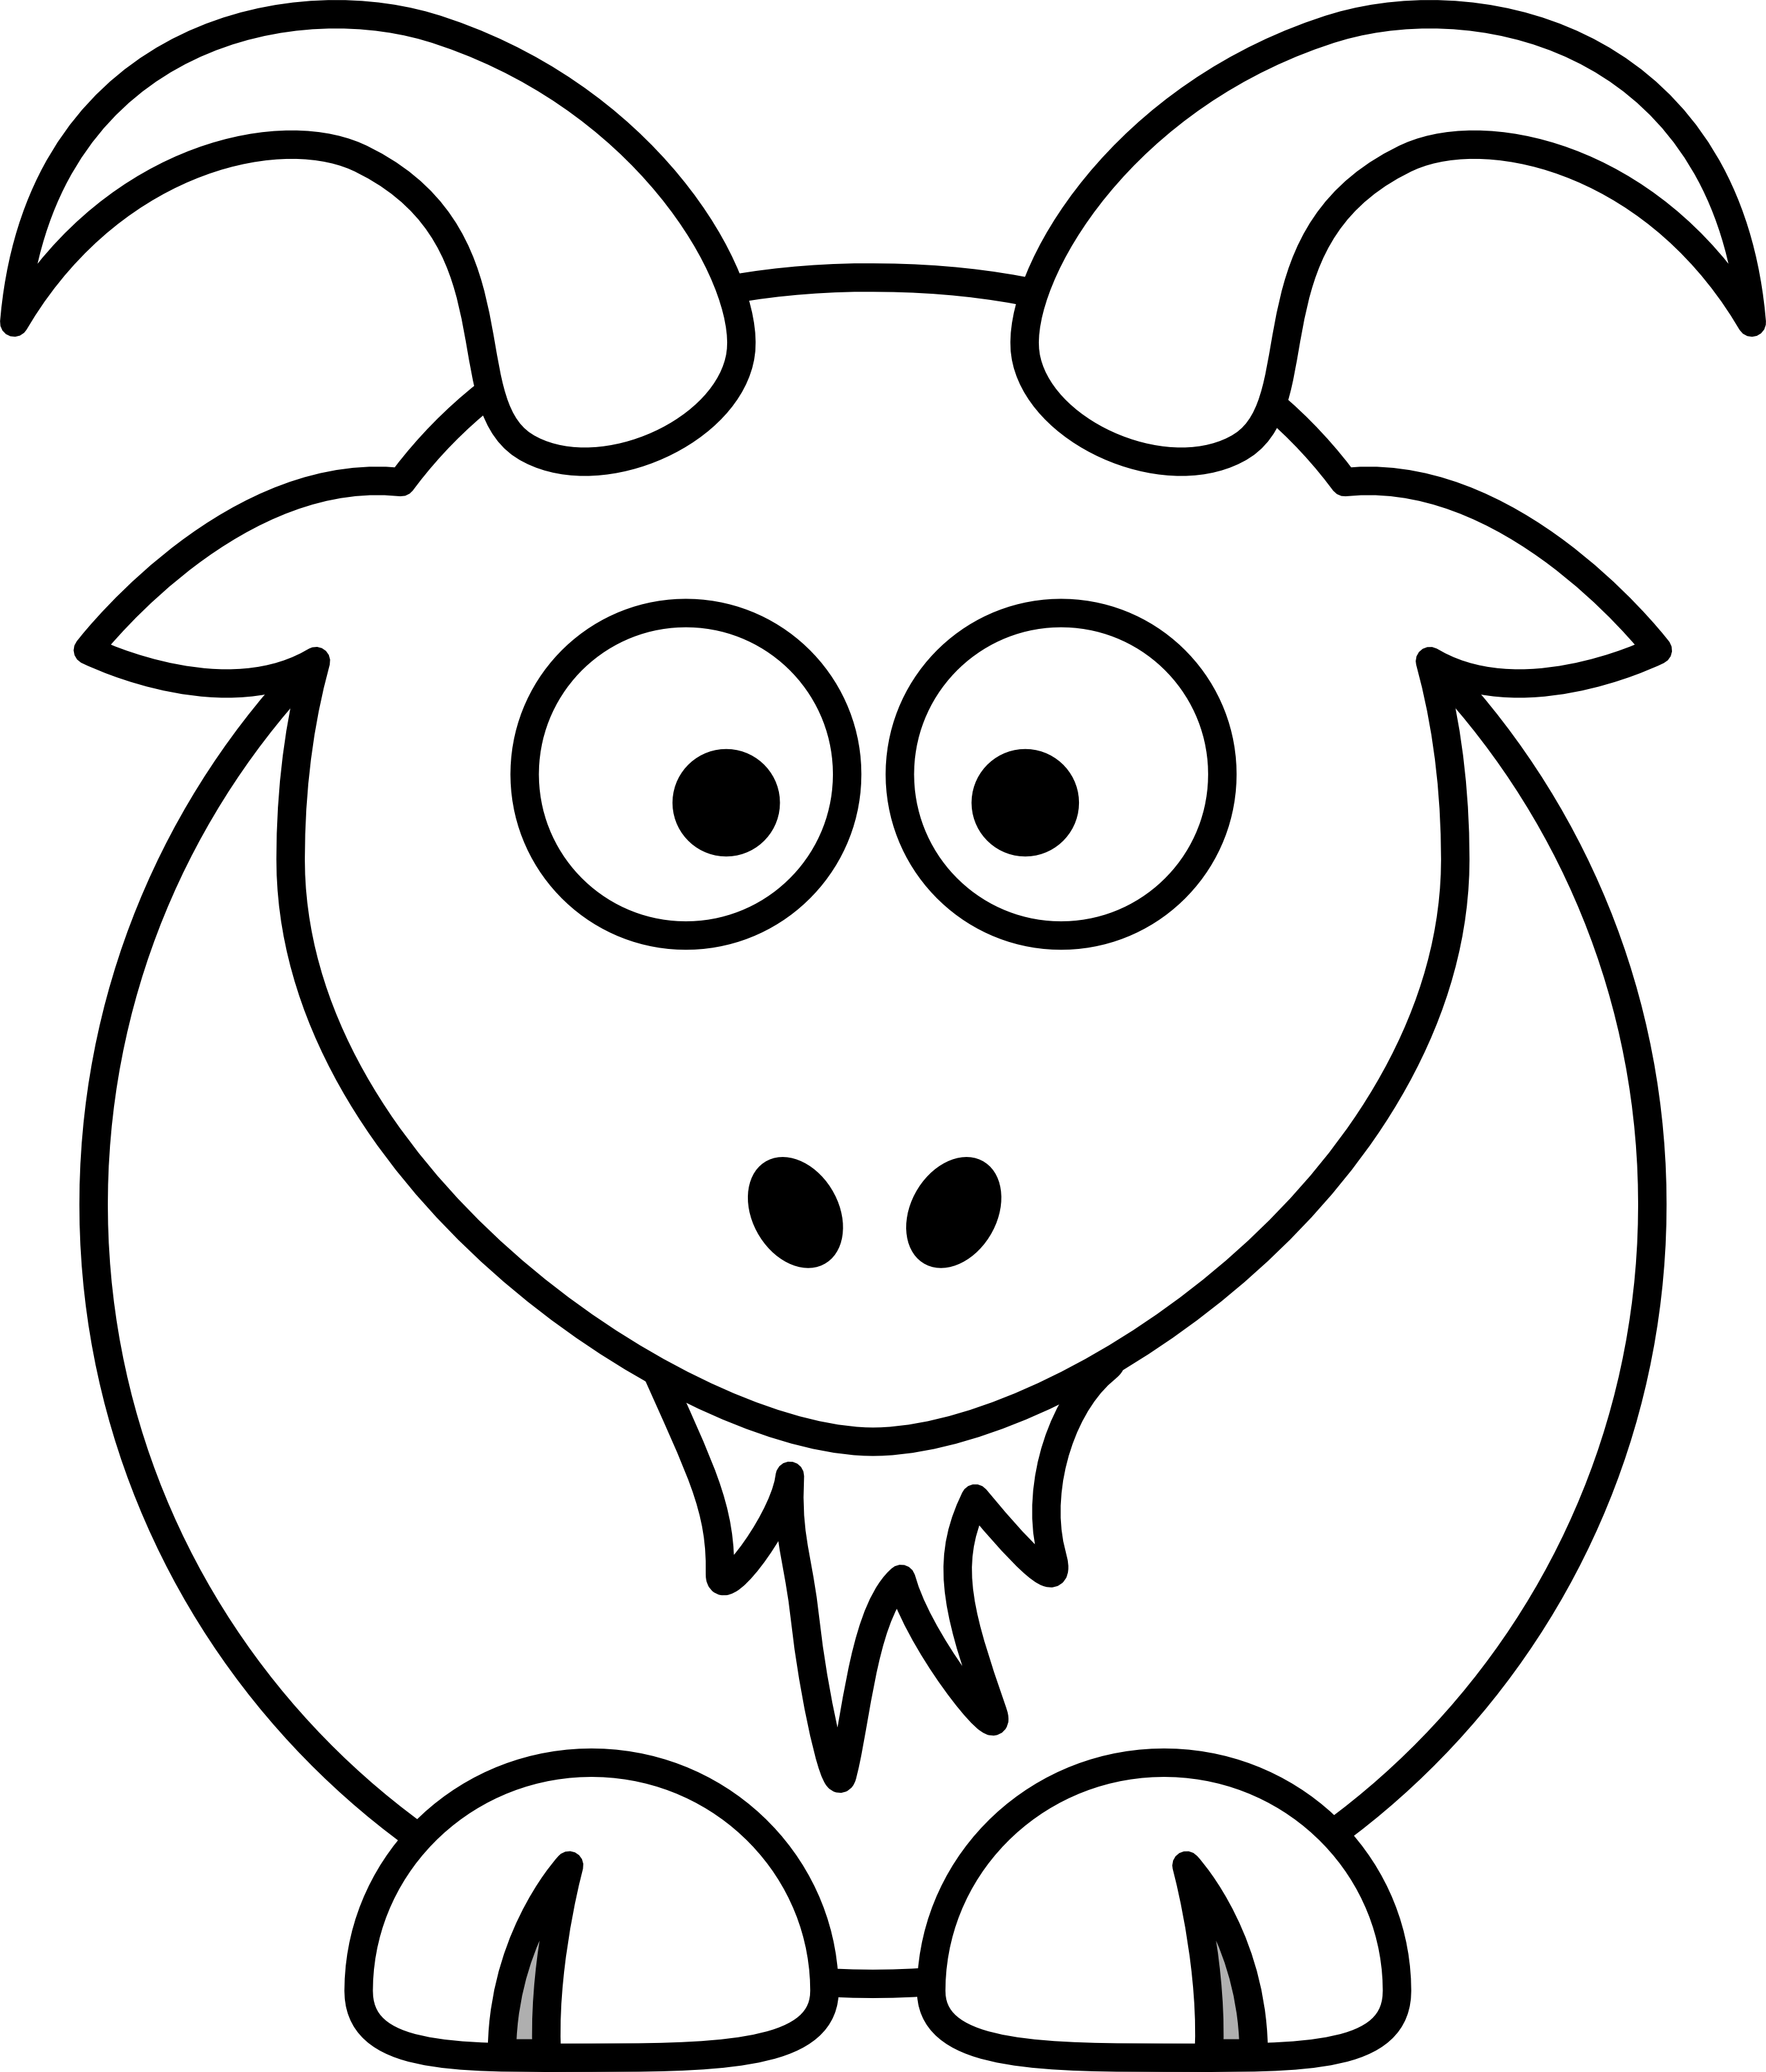 Goat Clipart Black And White Clipart Panda Free Clipart Images